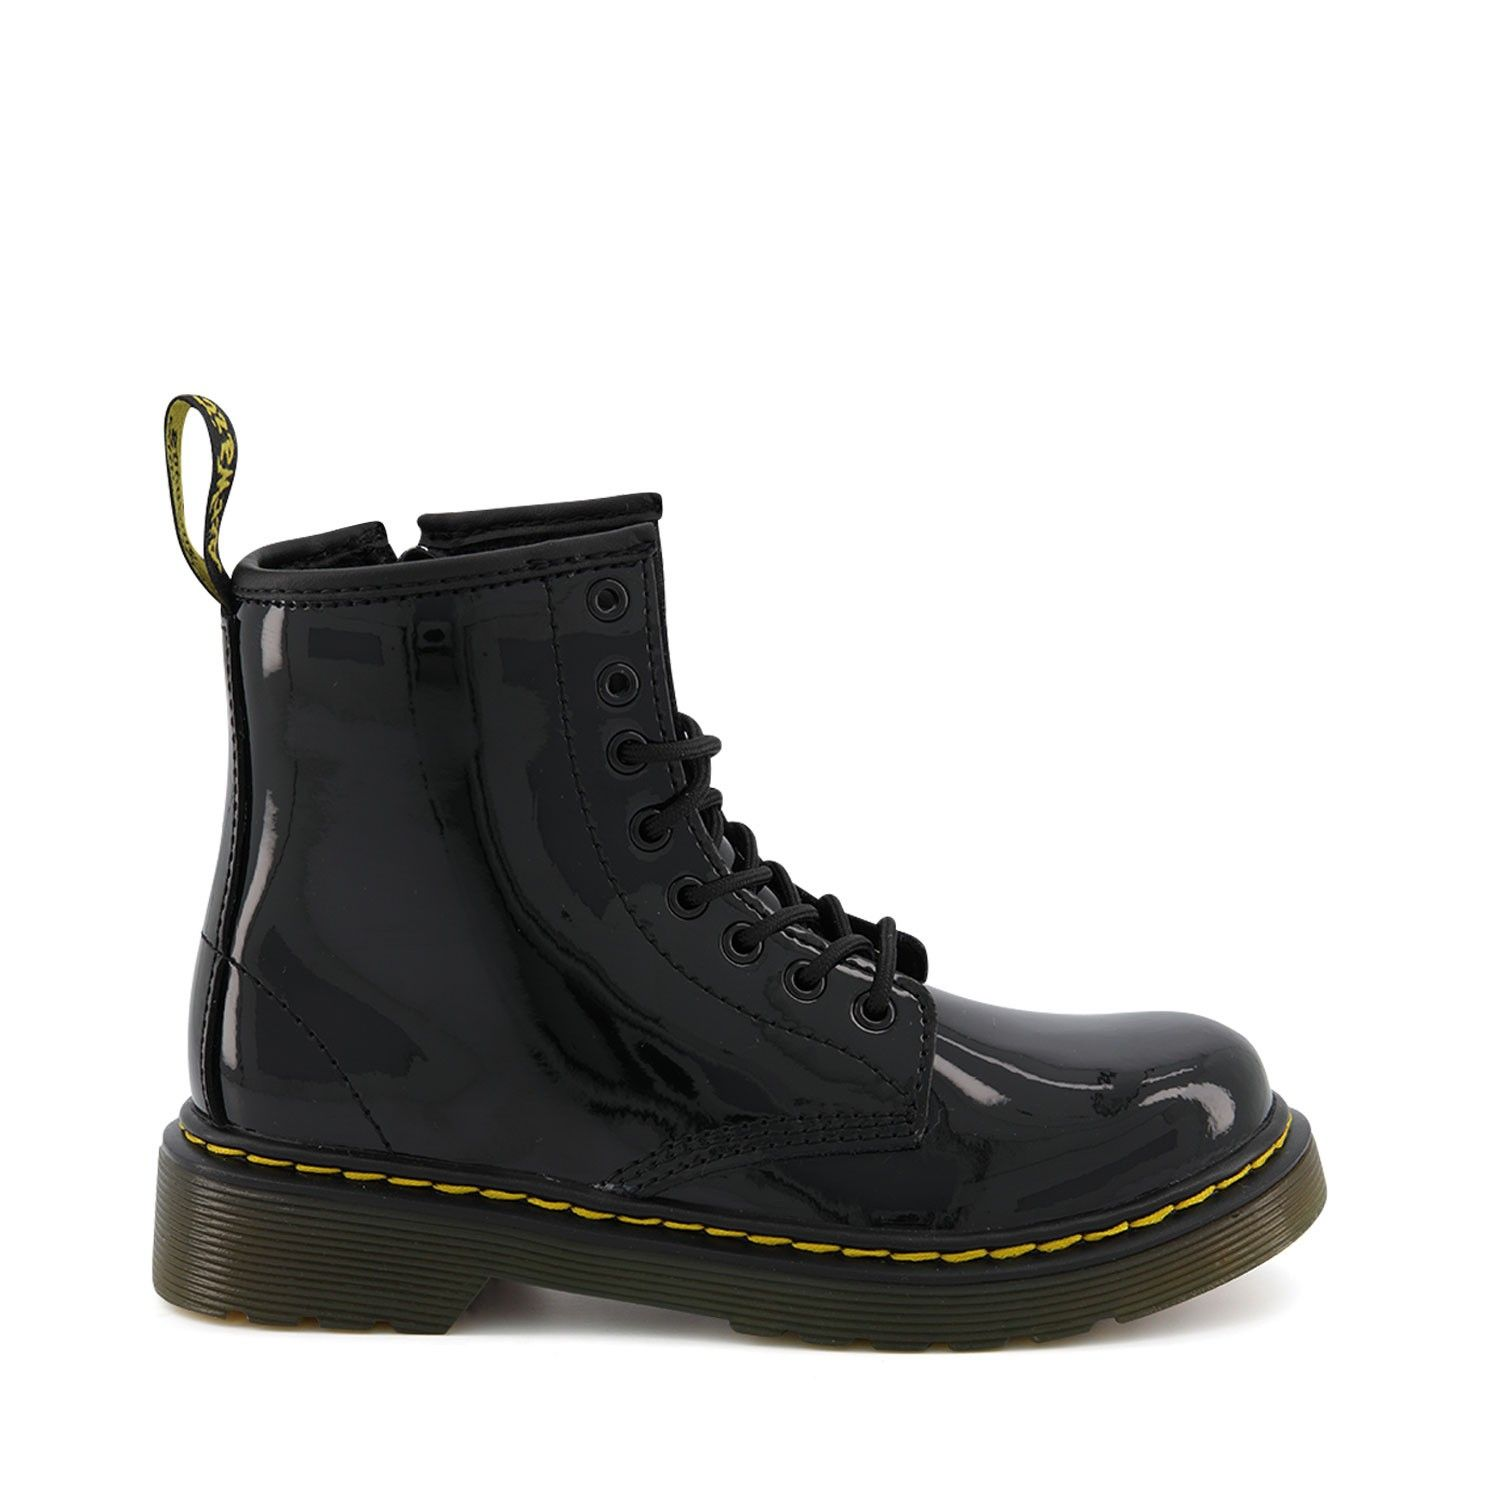 Picture of Dr. Martens 15382003 kids boots black